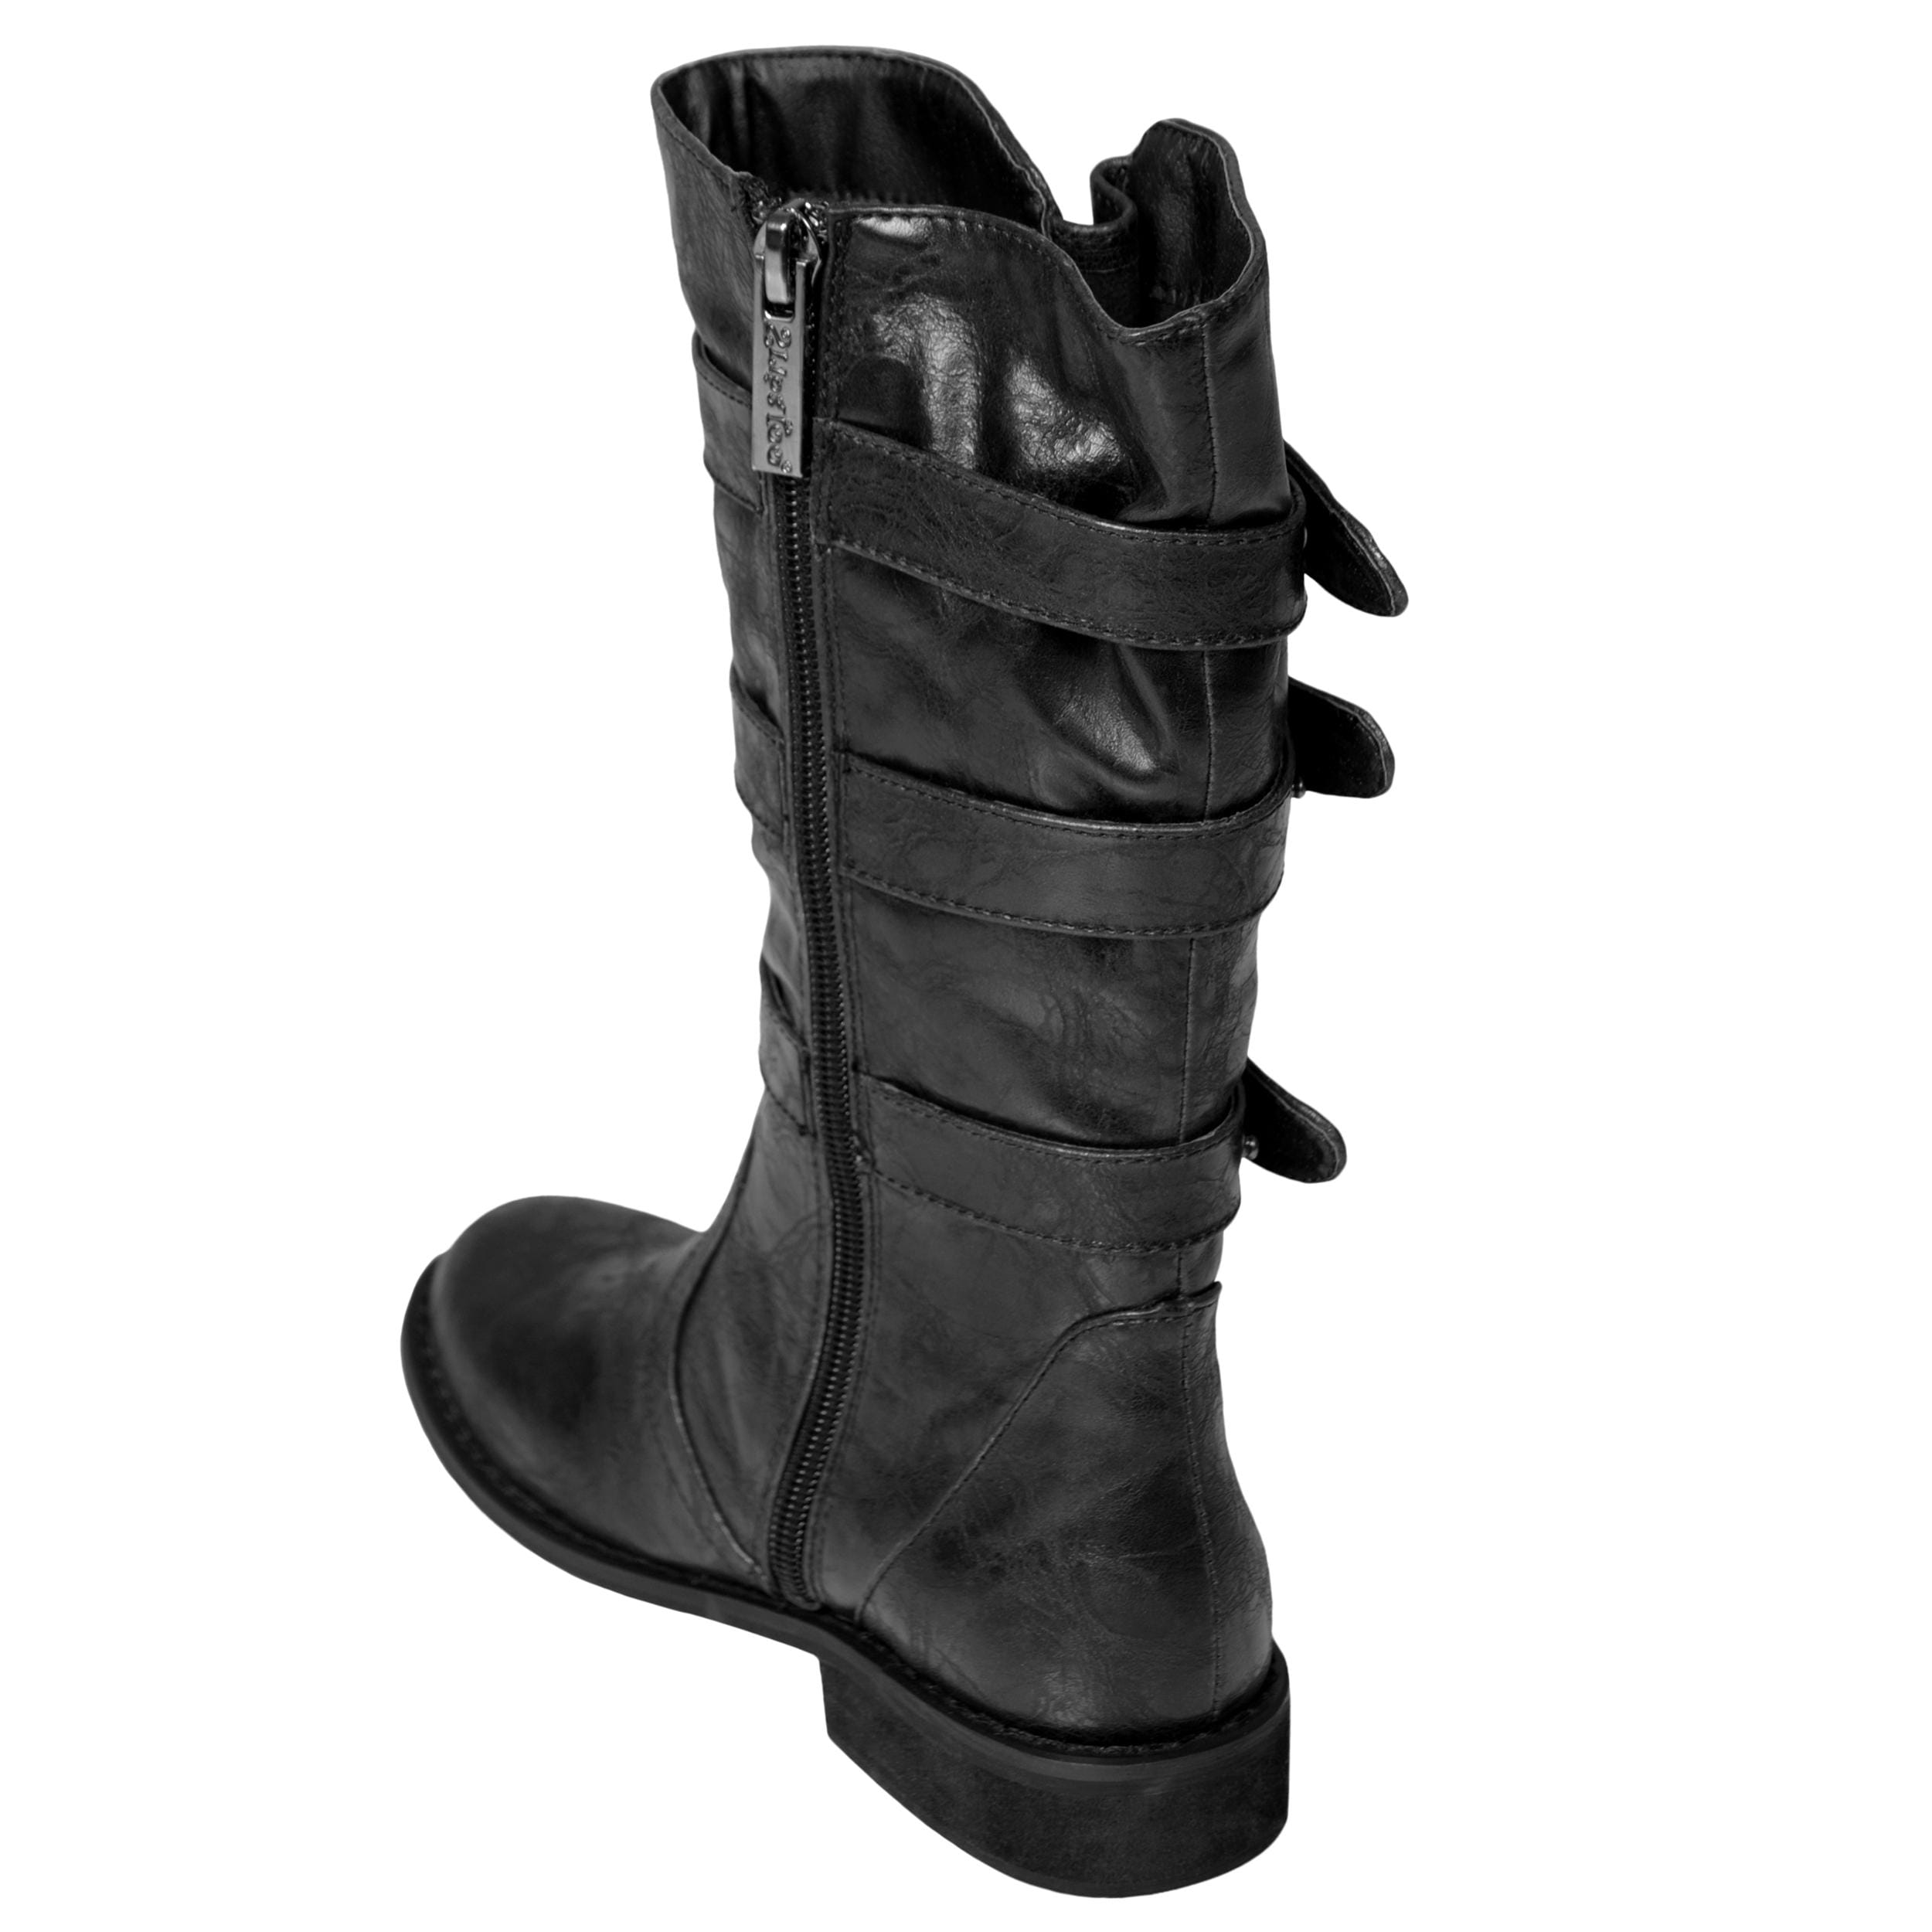 Two Lips Brand Girl's 'TooJolt-K' Snap Detail Mid-calf Boot